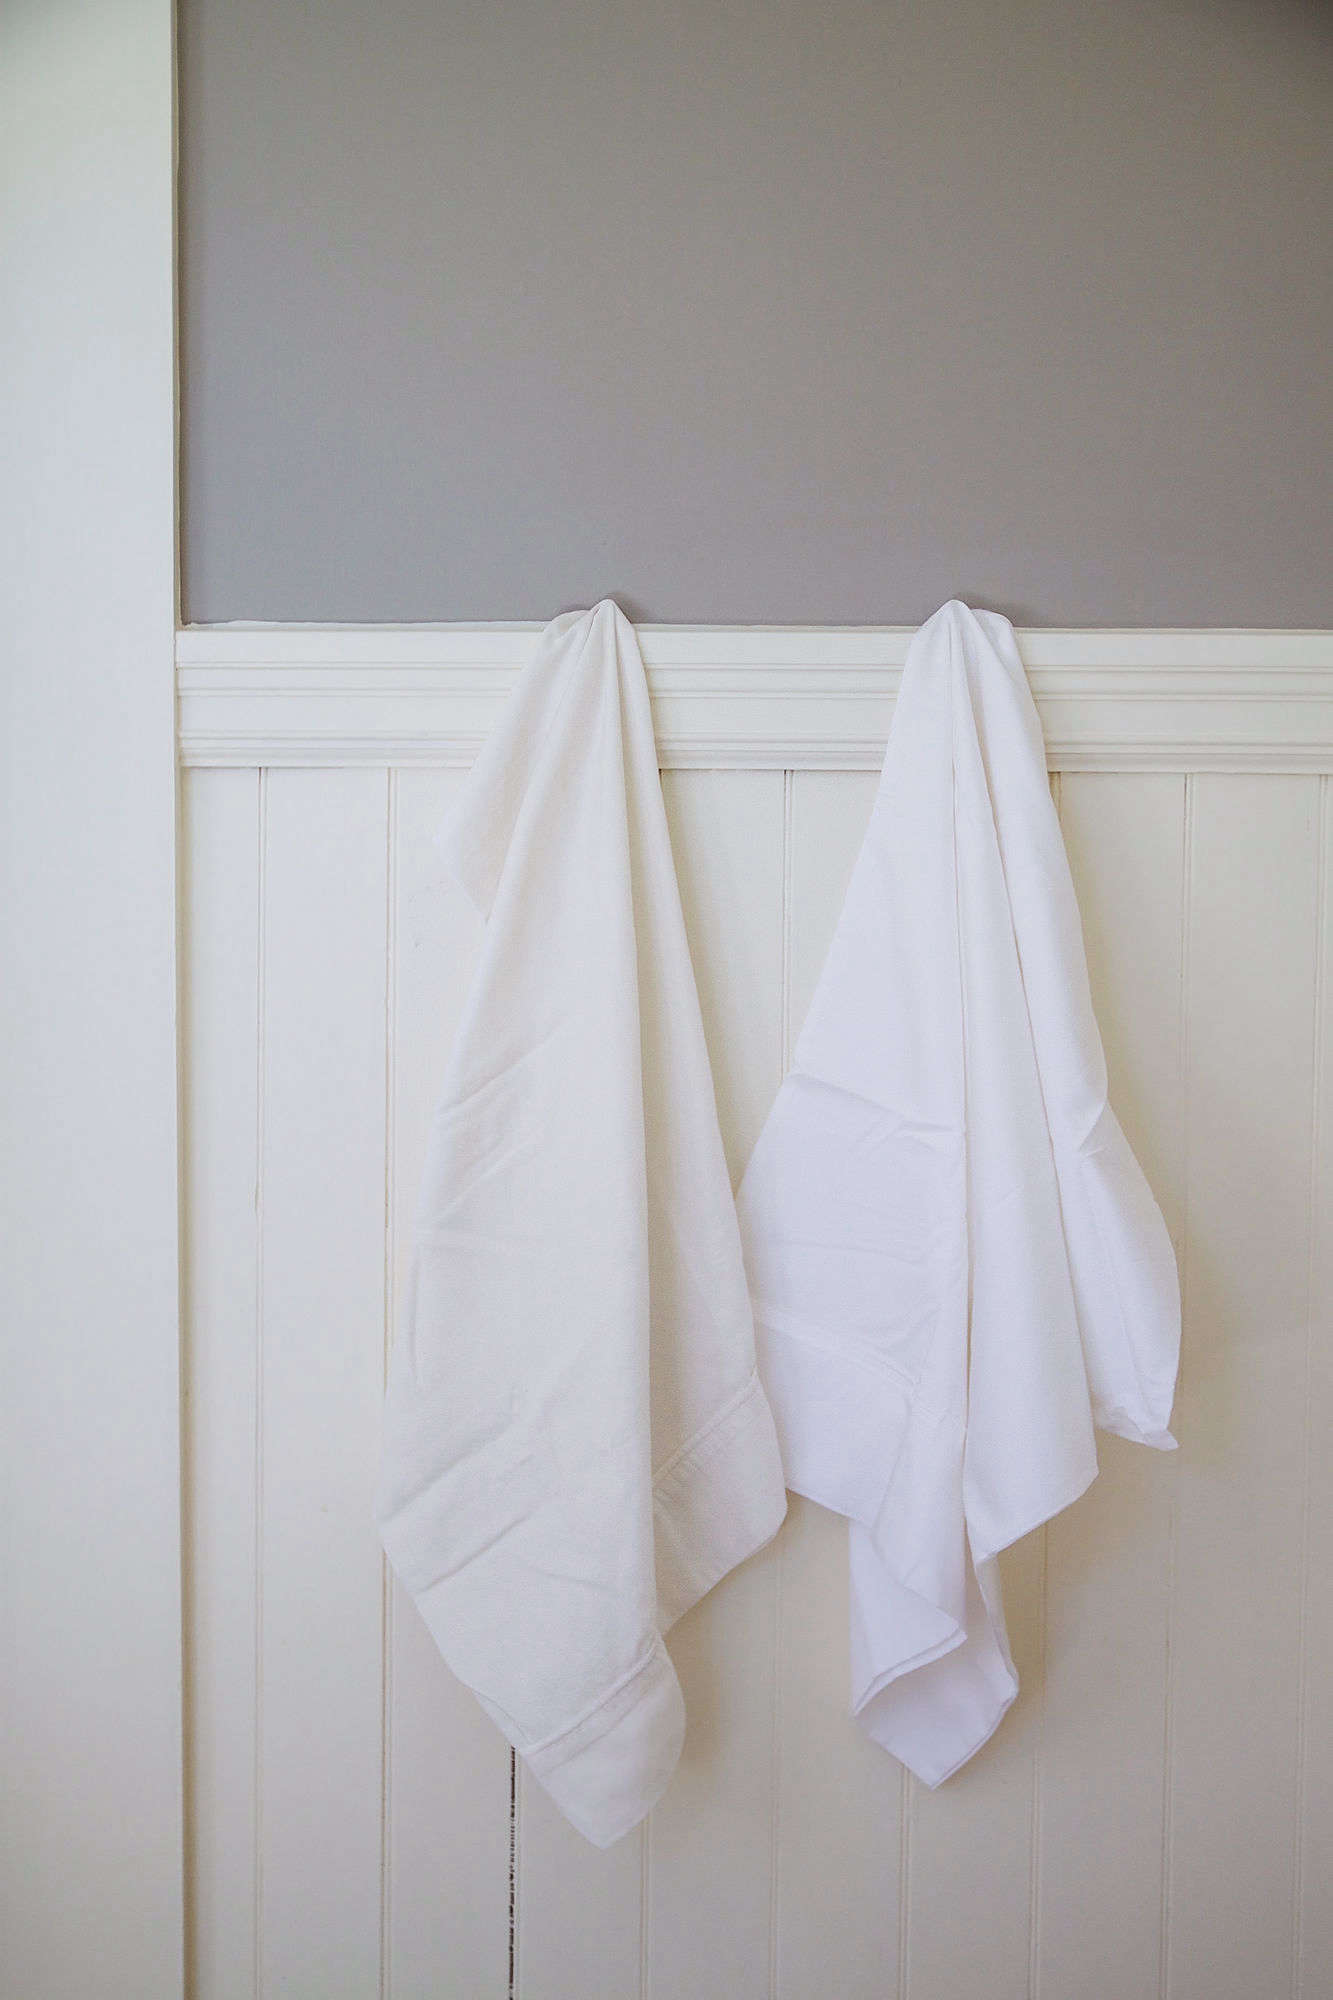 DIY: How to Whiten Your Sheets with Laundry Bluing